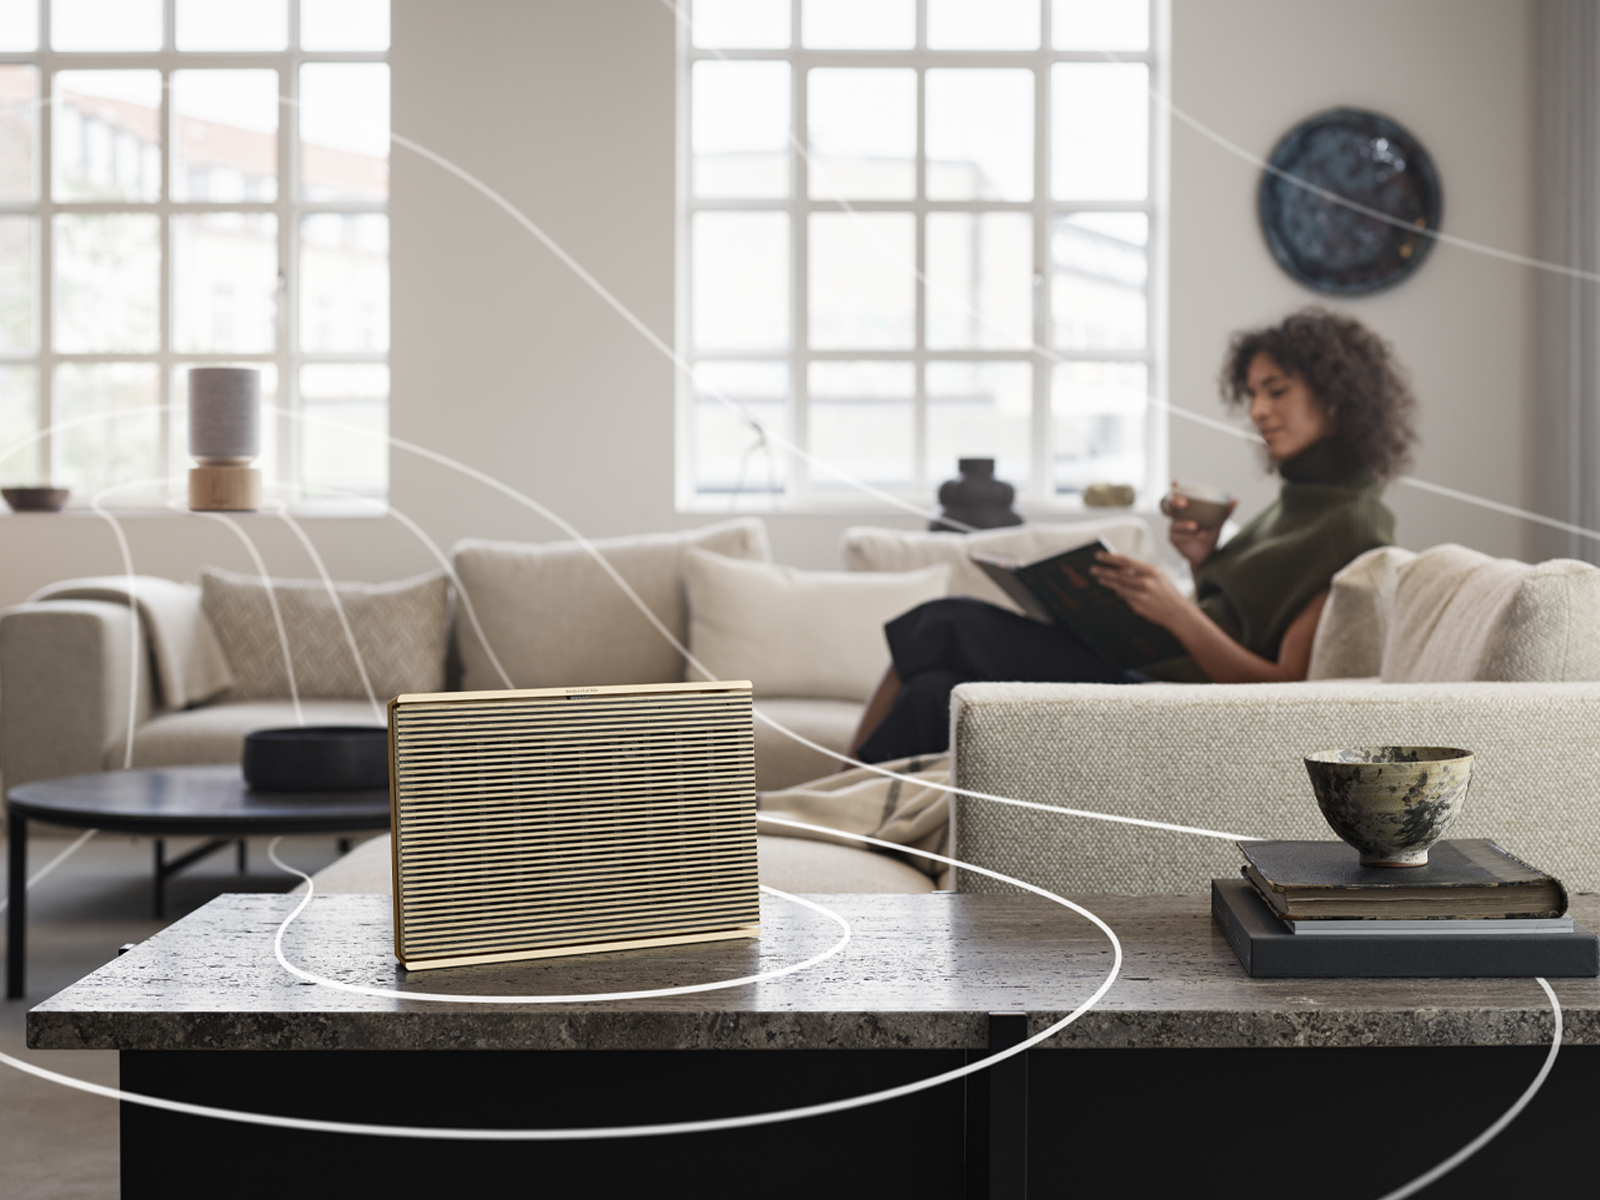 Beosound Level and Balance connected speakers in living room